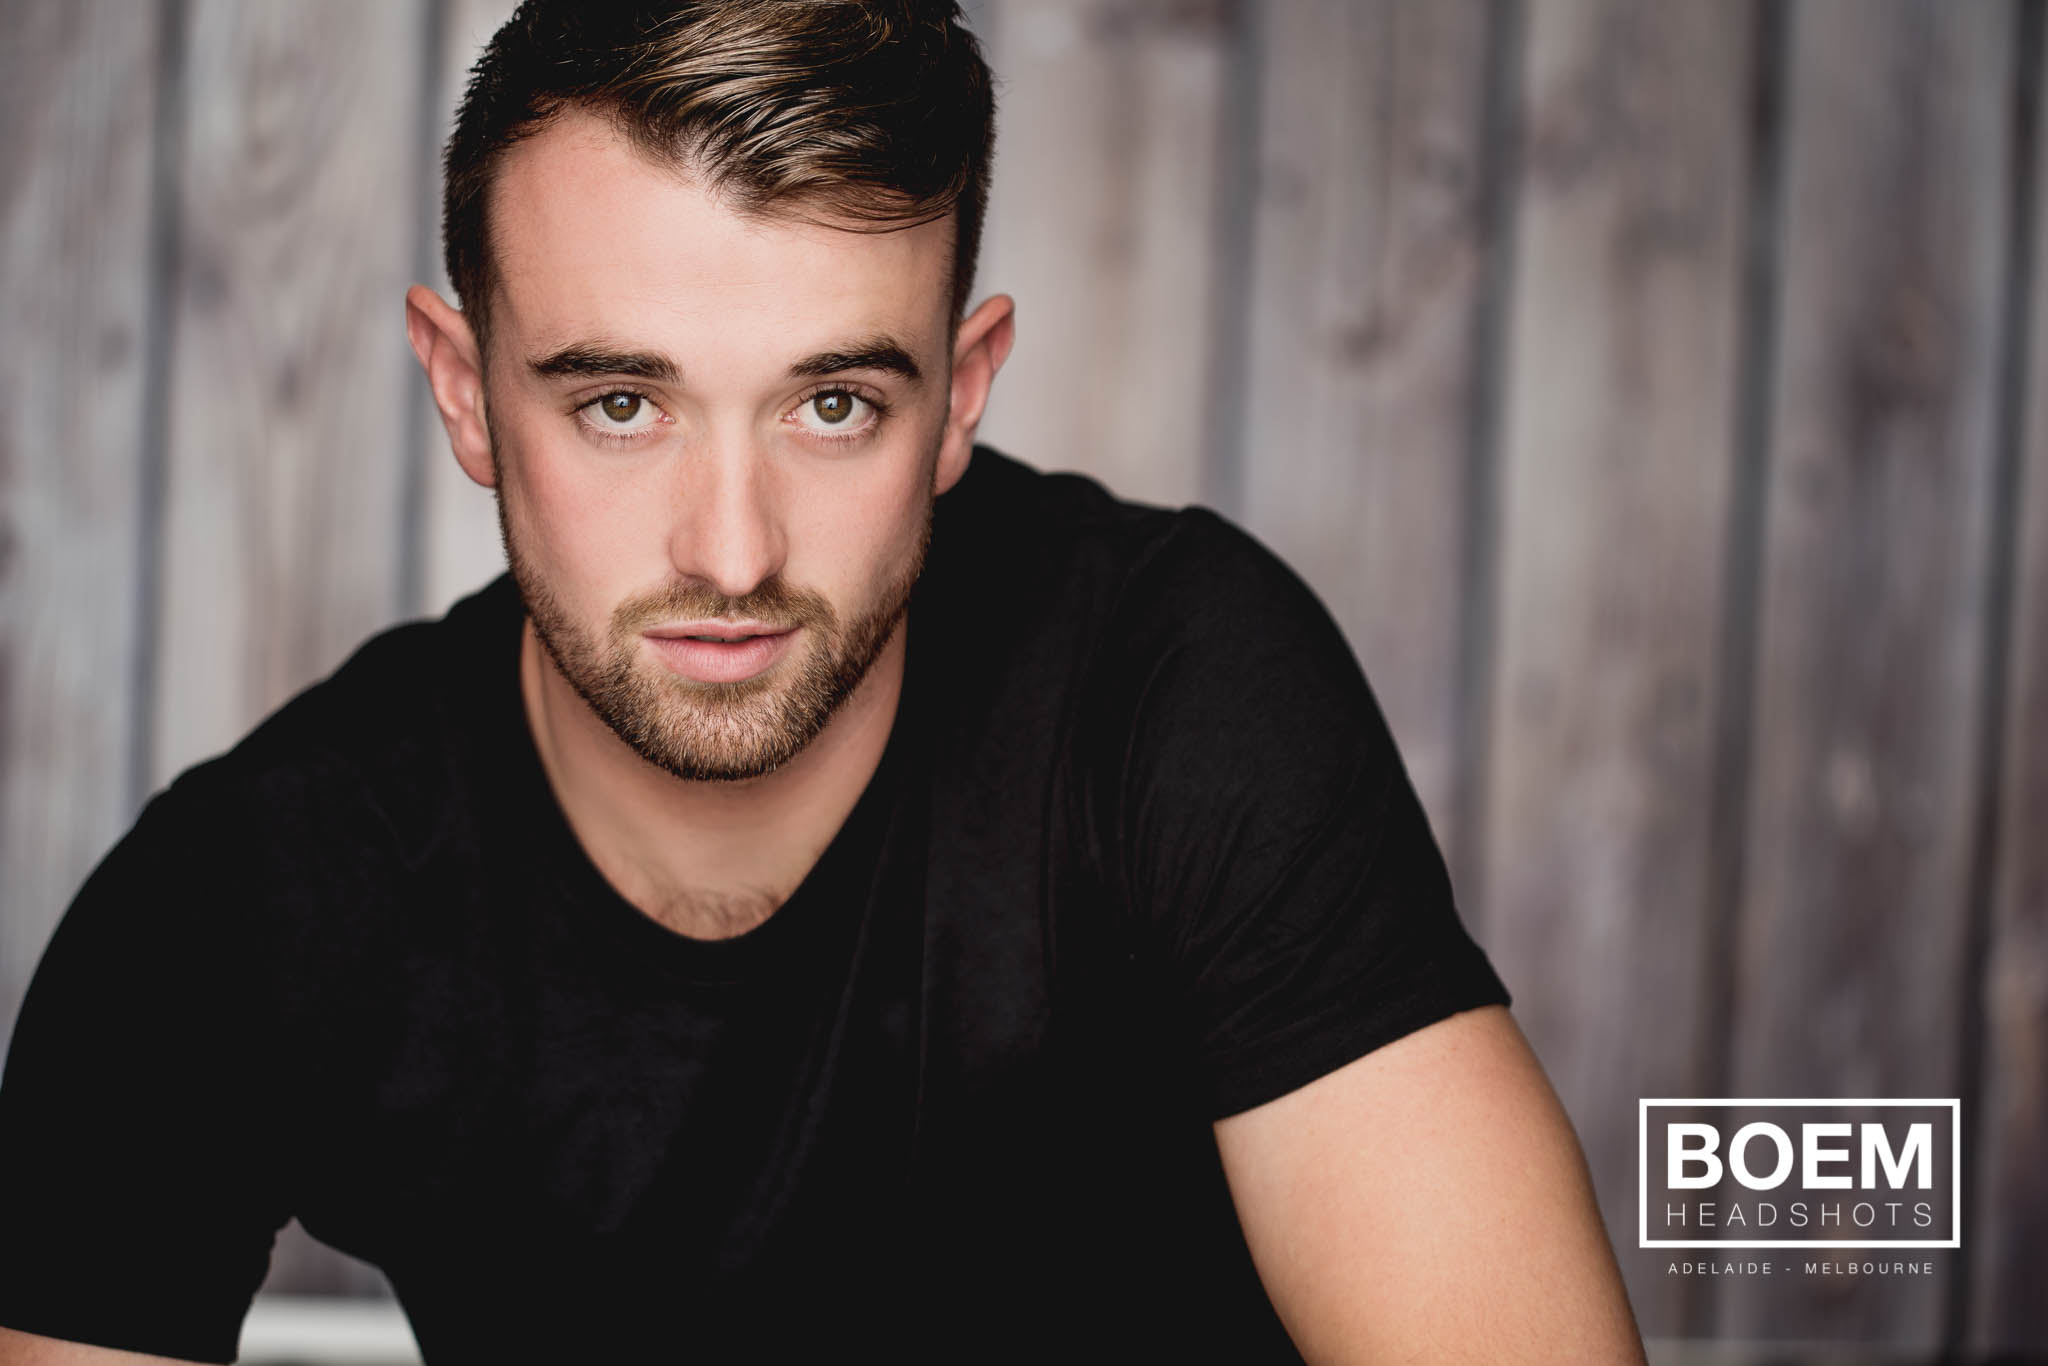 A preview of our actor headshots for Jack. Jack came in for a set of brand new headshots to add to the set we did for him back 2014. So much has changed and he's even more suave now!